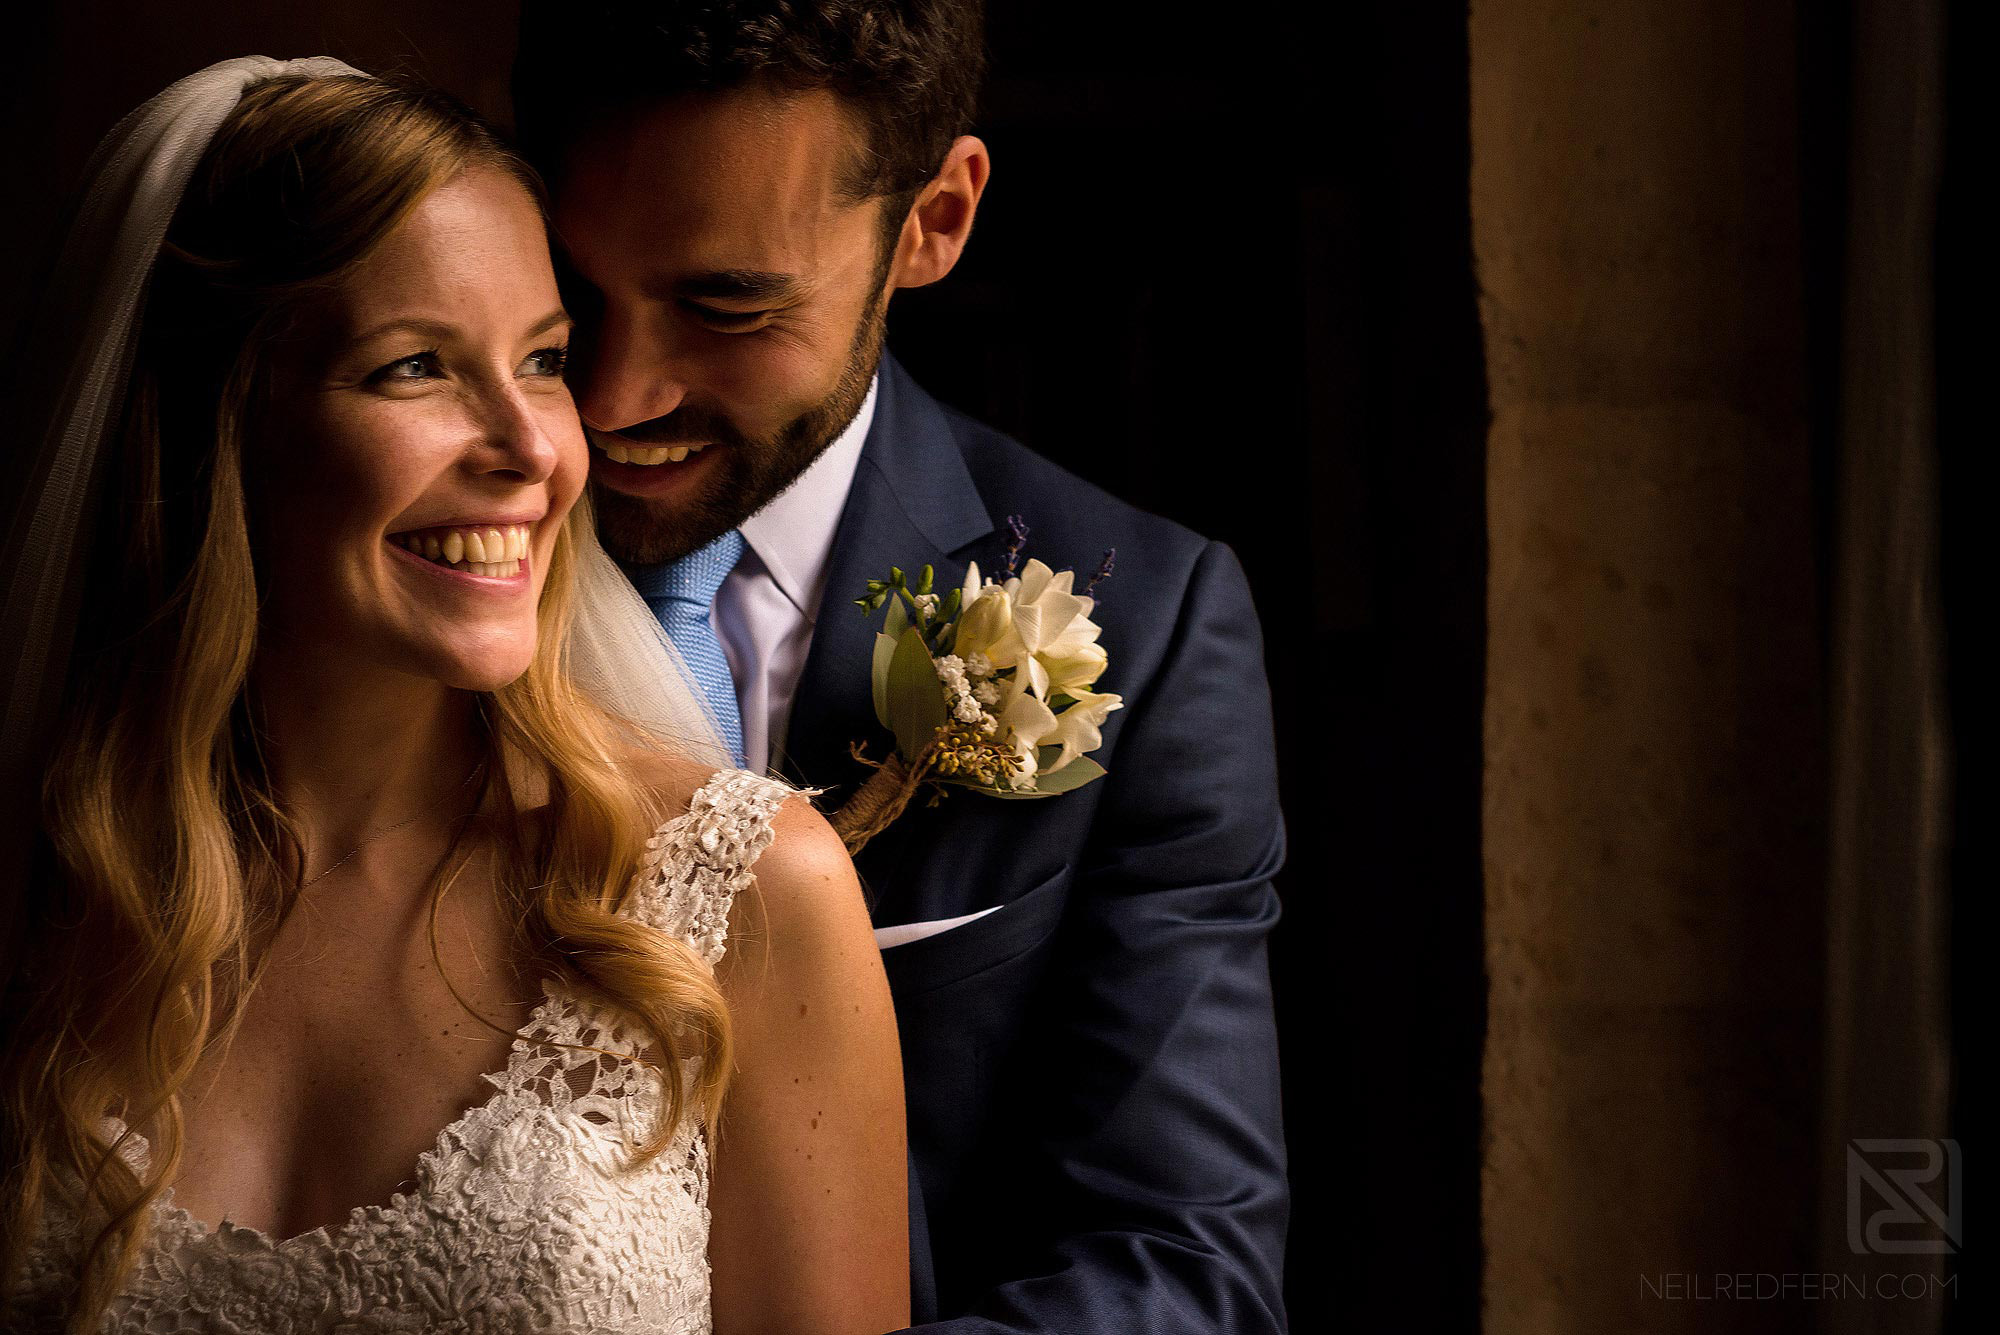 intimate portrait of bride and groom inside Chateau Soulac